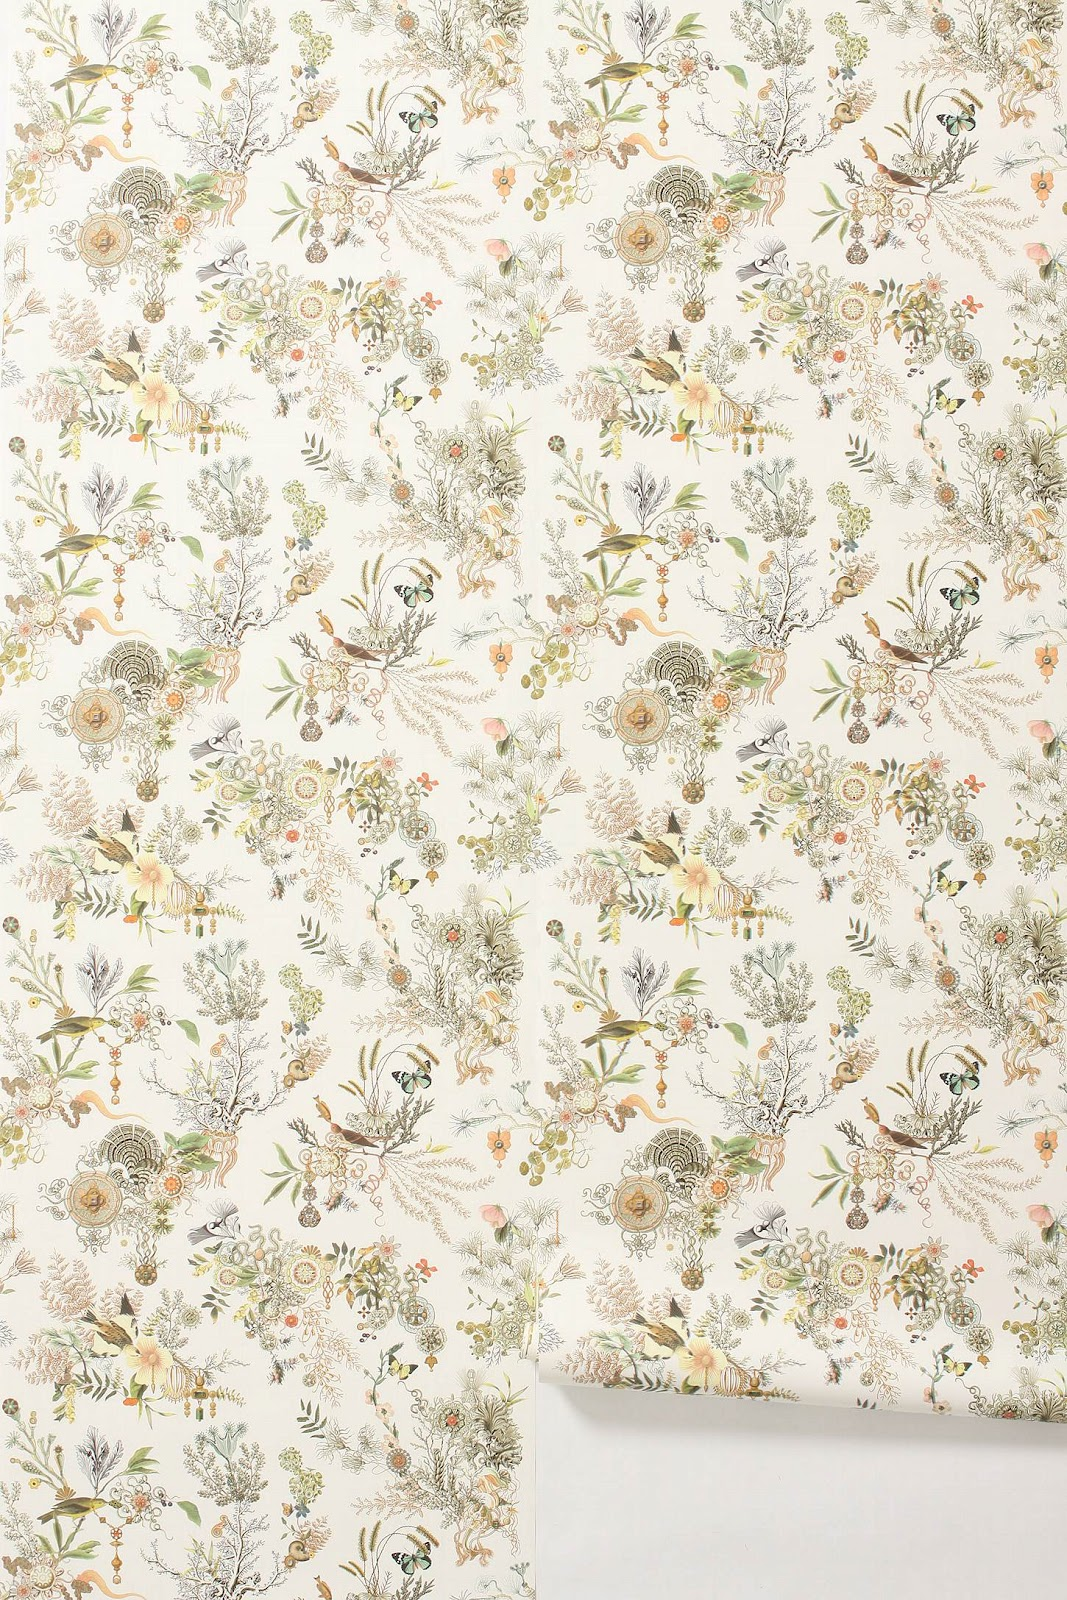 courtney lane: Patterned Wallpaper {De Gournay & Anthropologie}